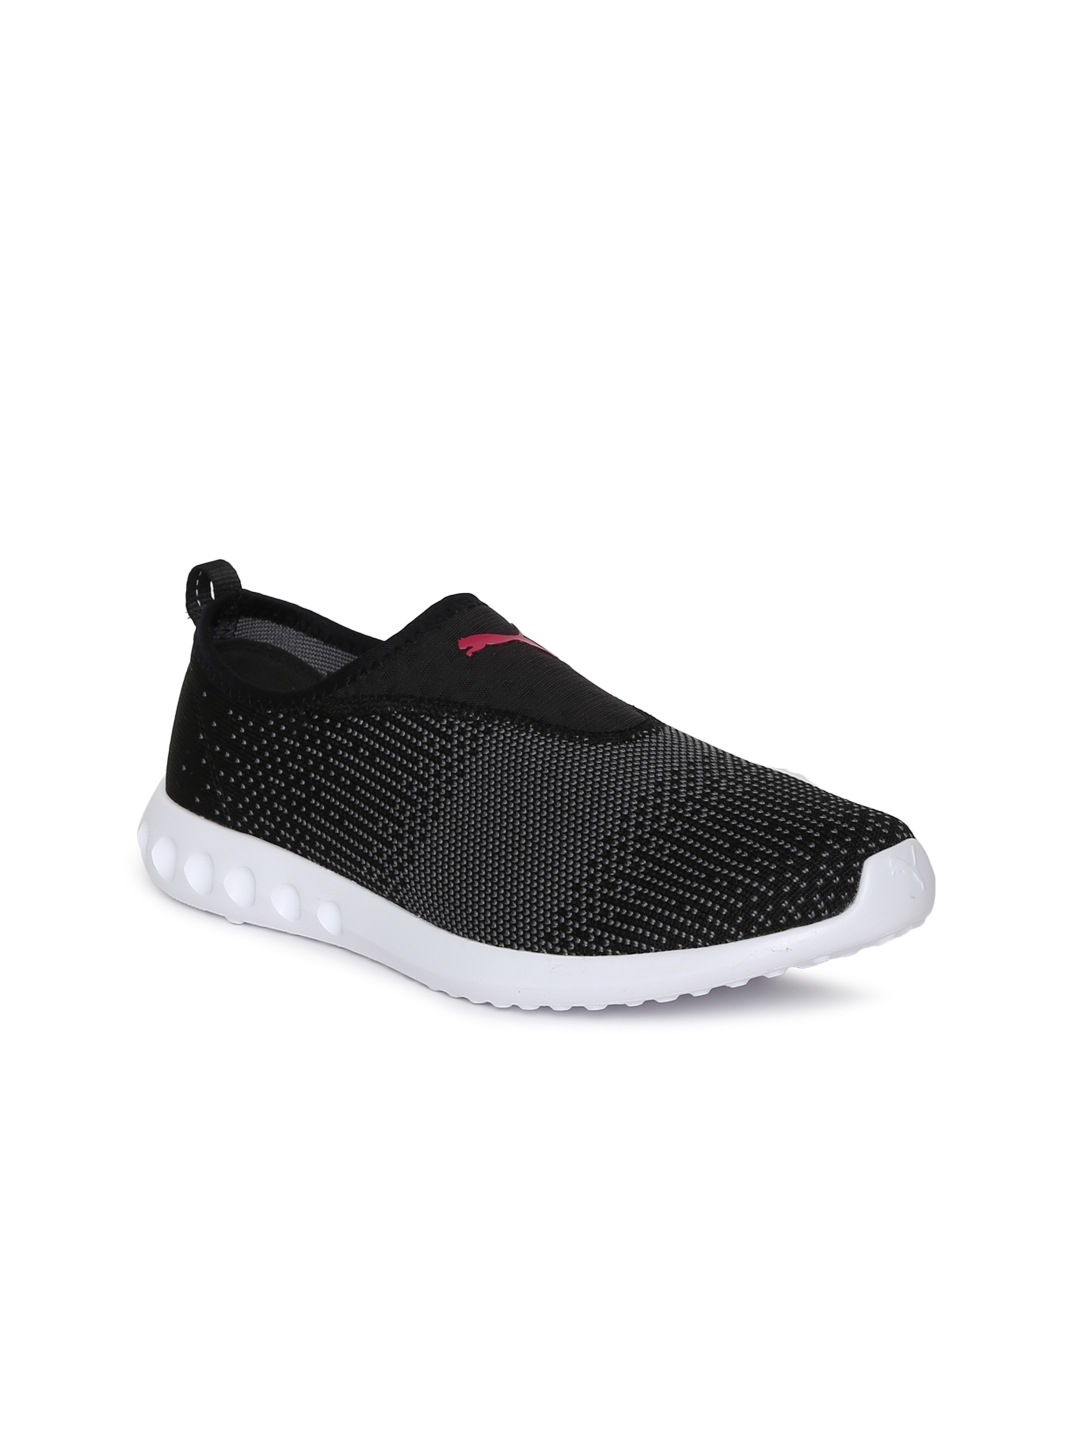 18545c4ca1ab Buy Puma Women Black Carson 2 Running Slip Ons - Sports Shoes for ...